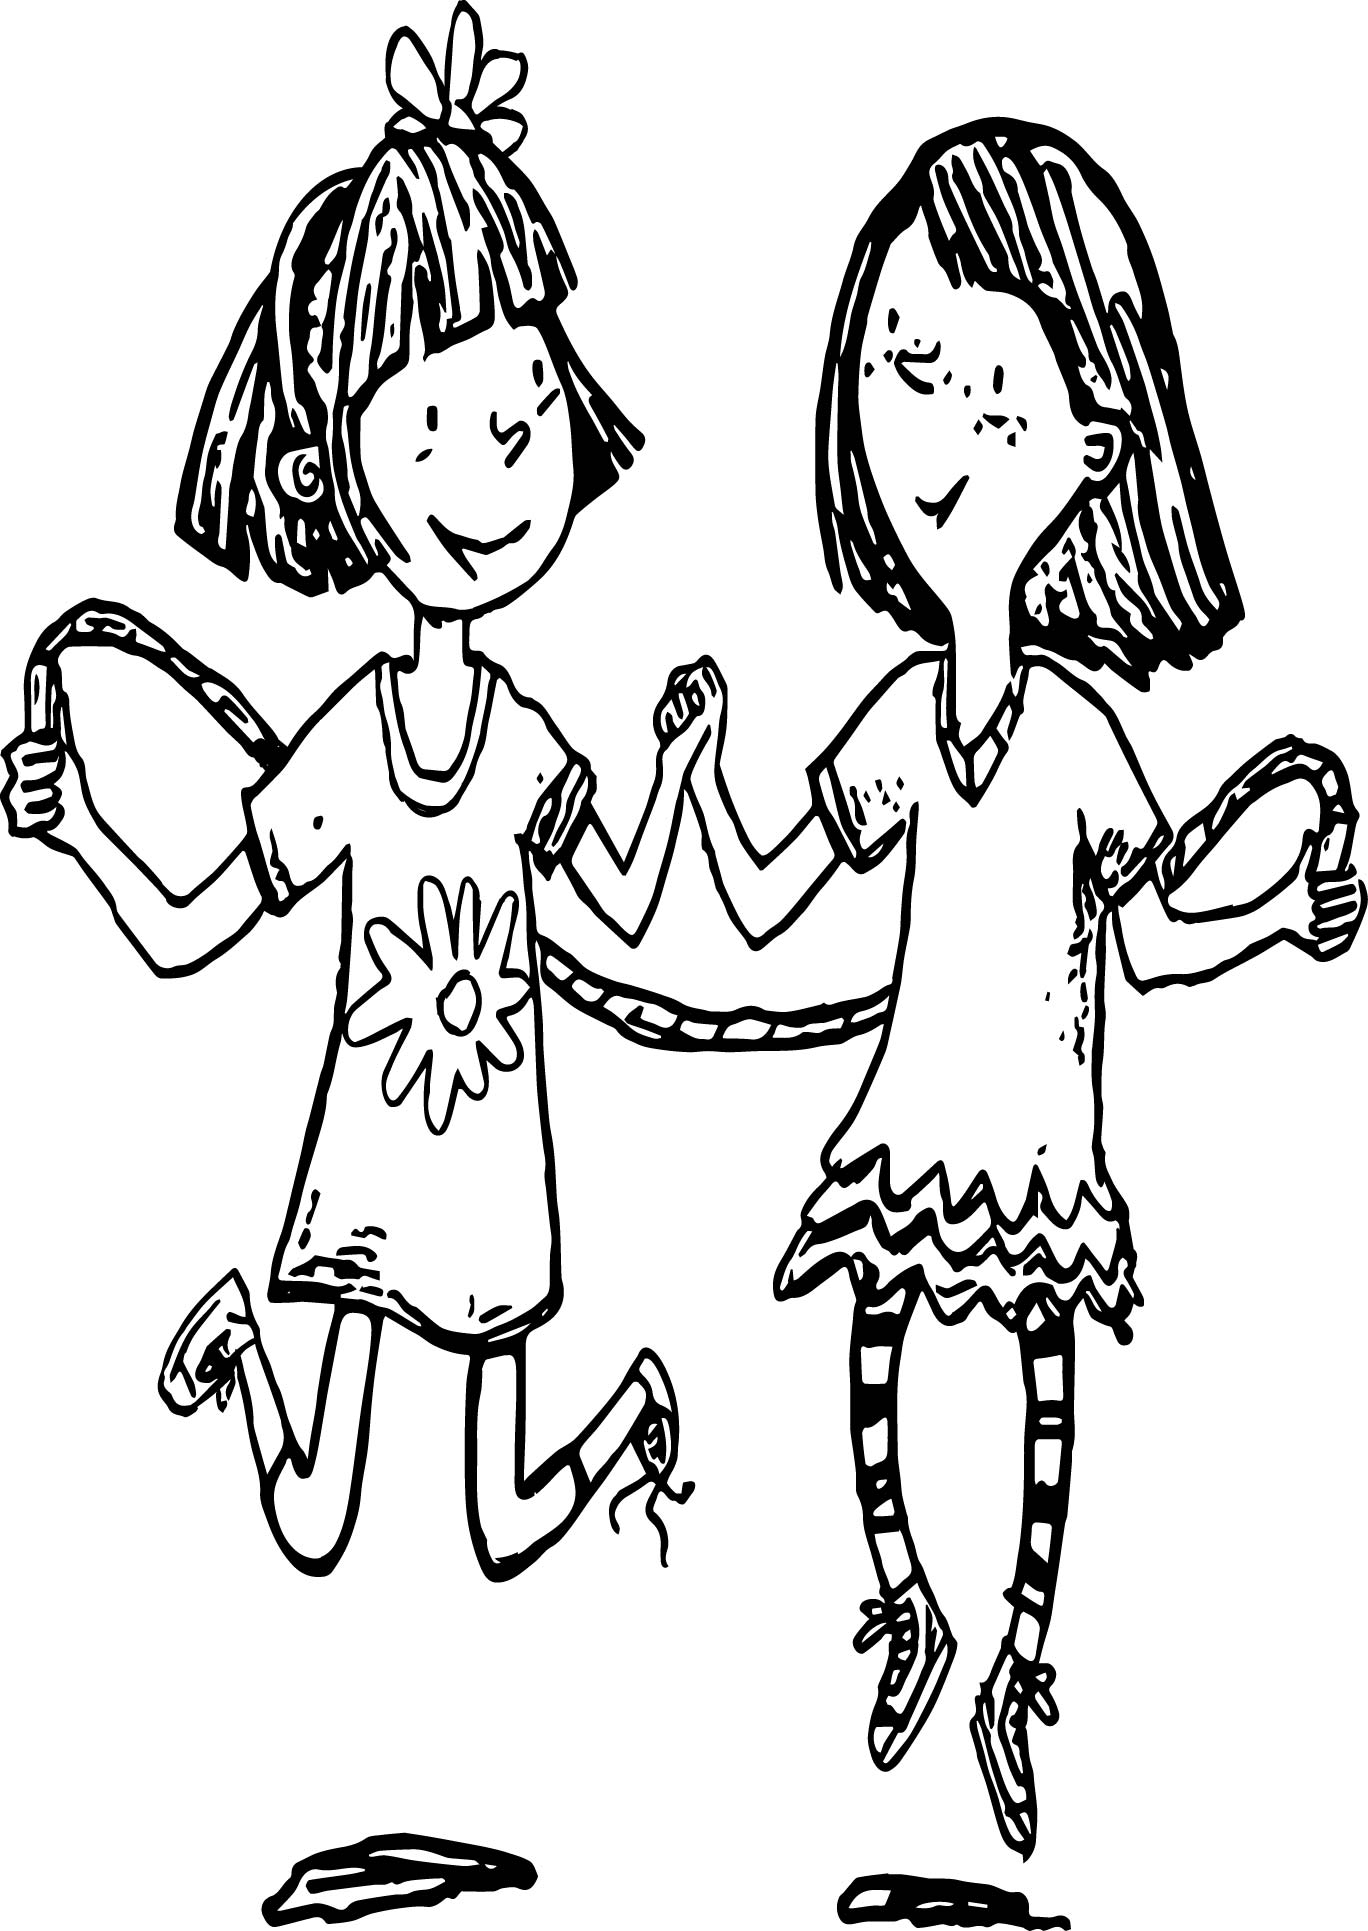 Amelia Bedelia Coloring Pages Jump Roping